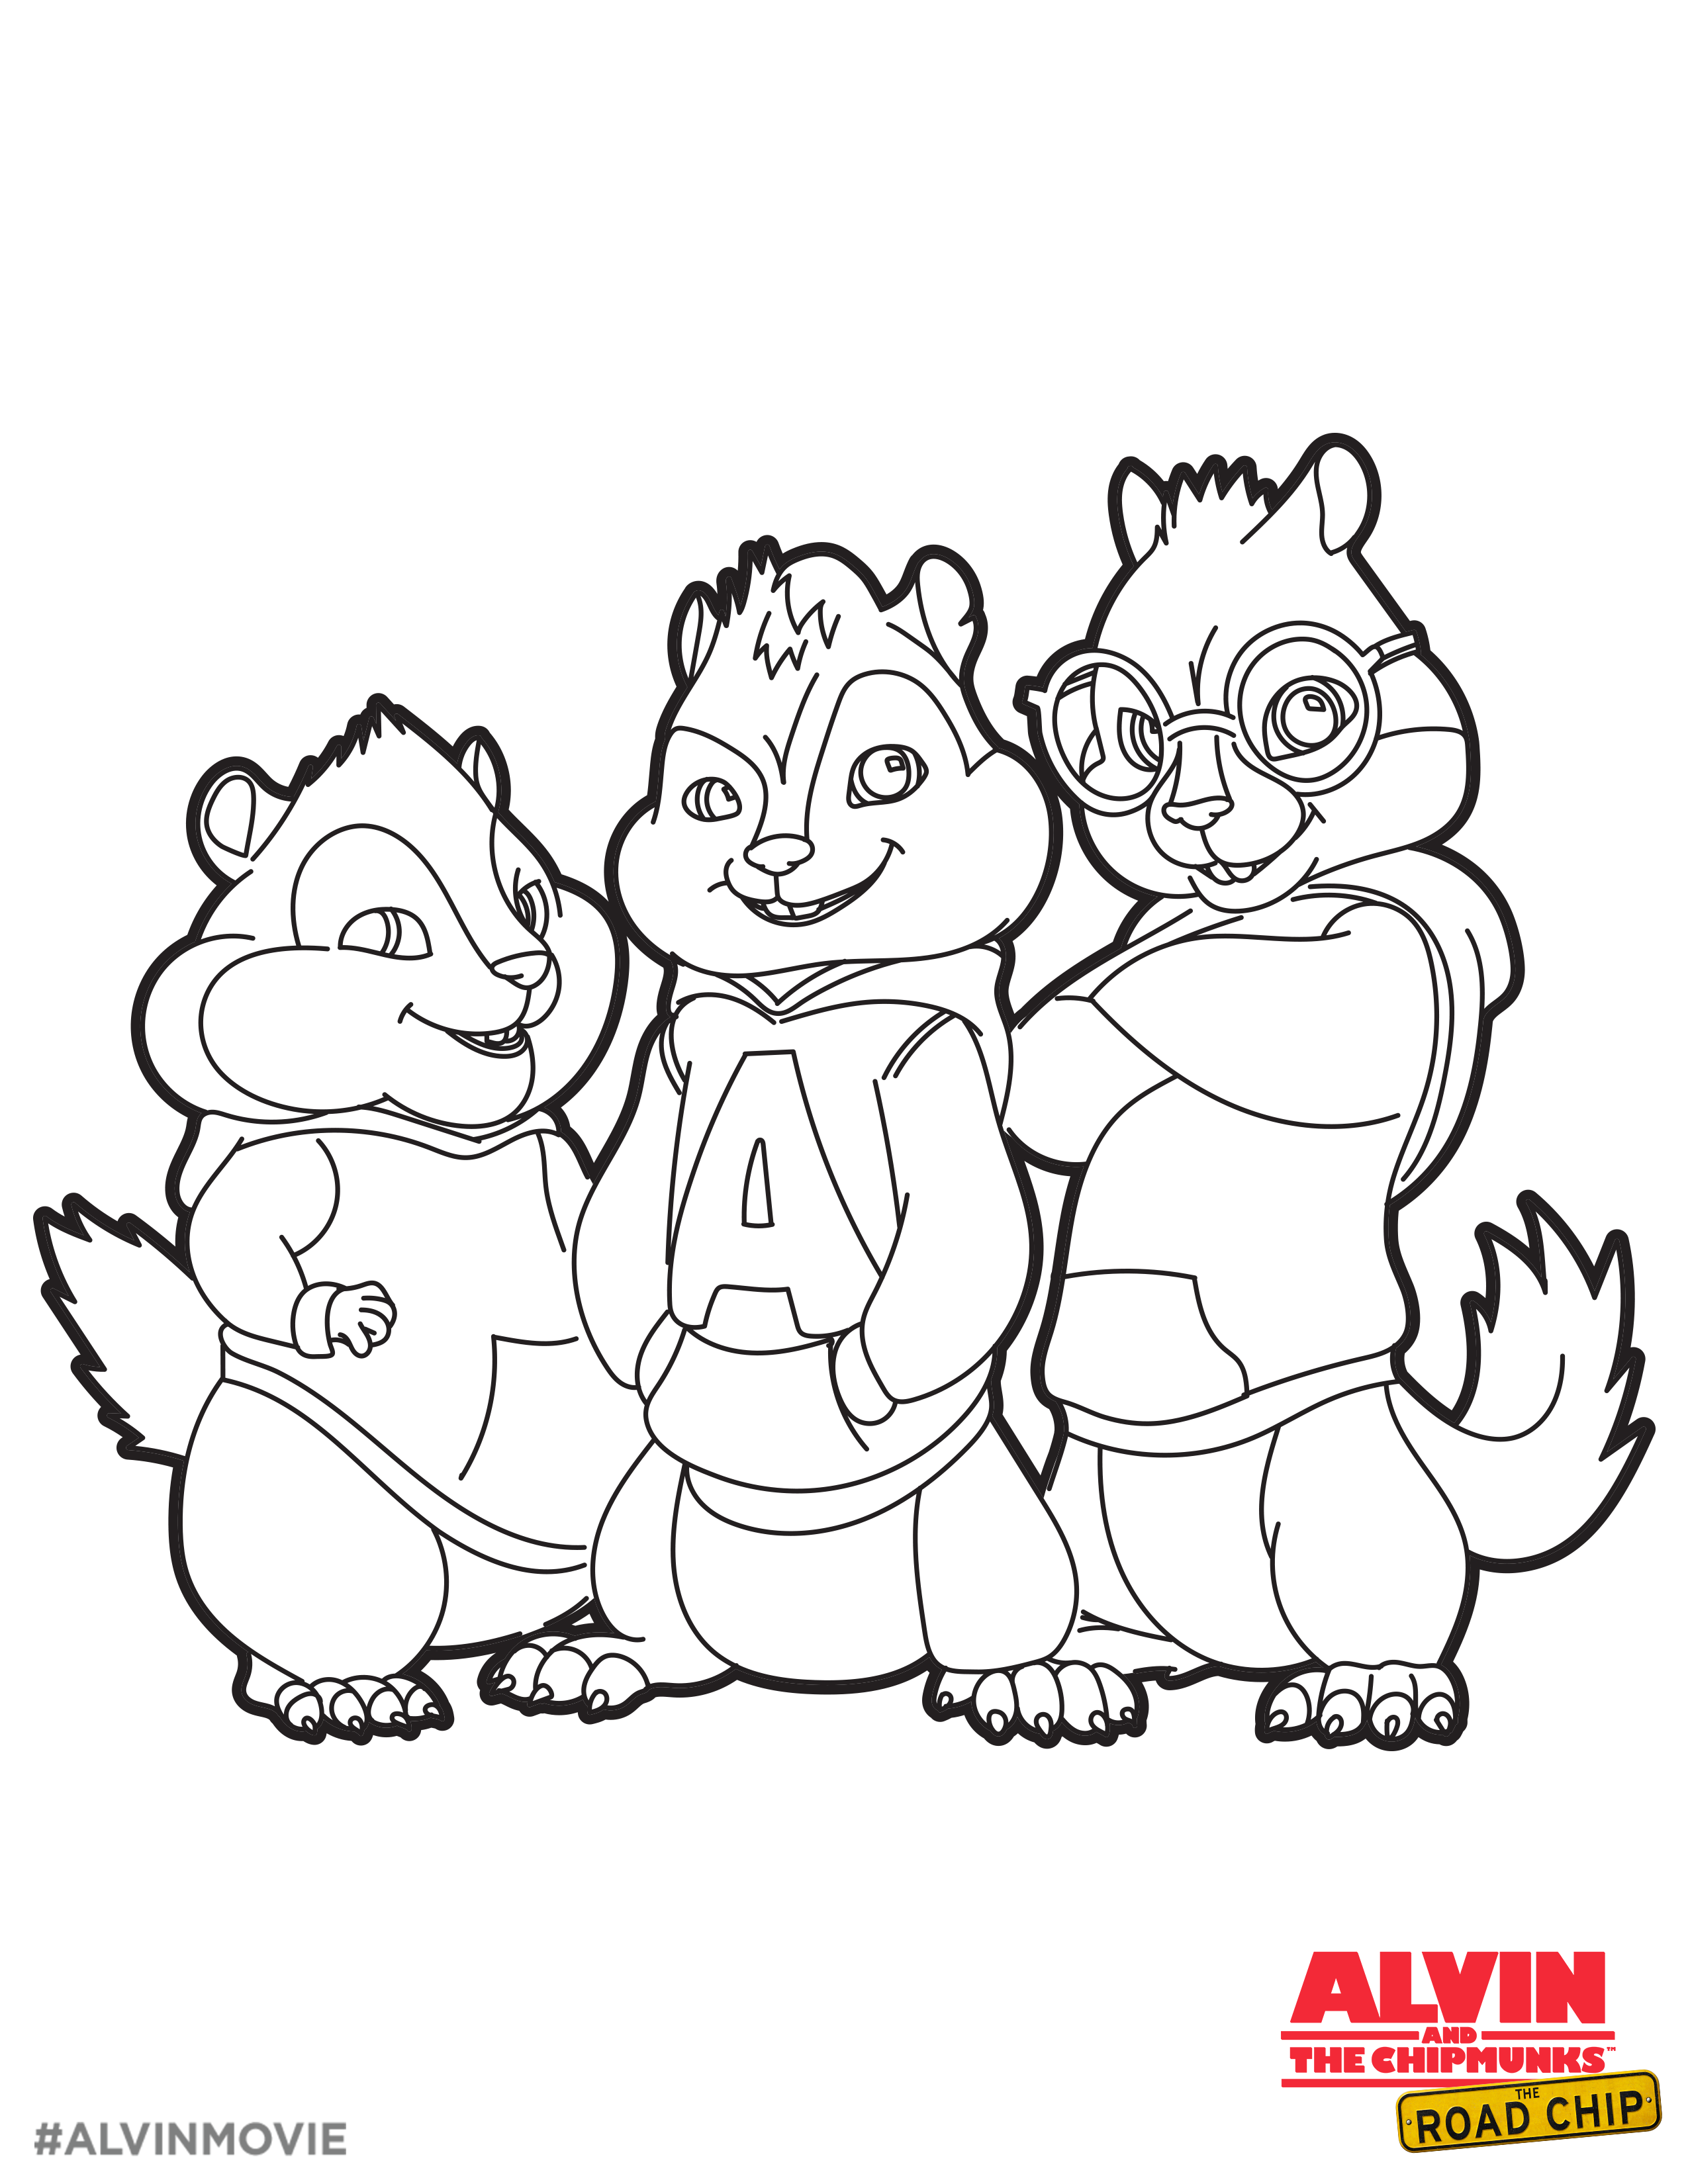 Alvin and the Chipmunks Free Coloring